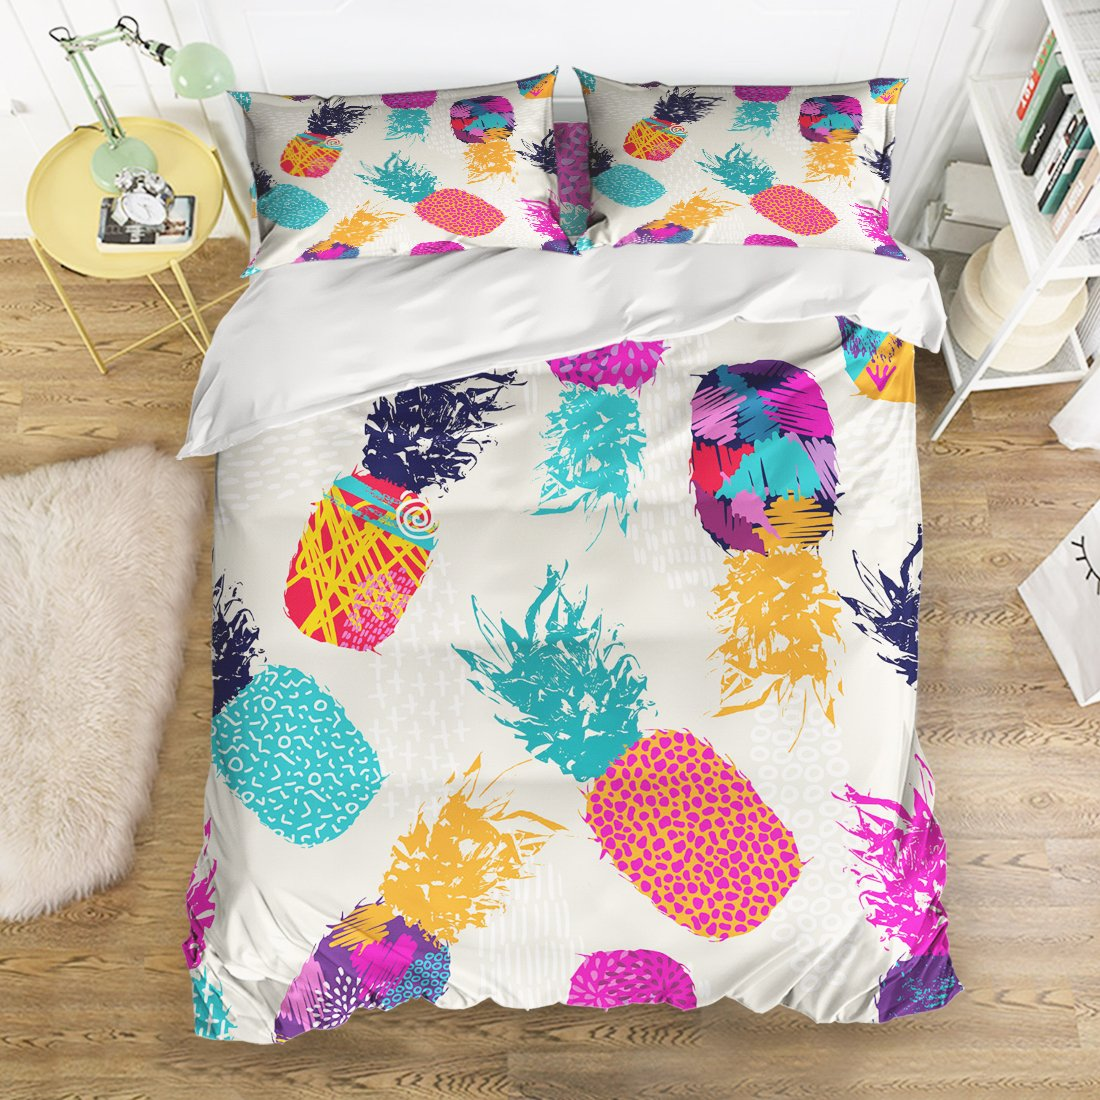 Libaoge 4 Piece Bed Sheets Set, Watercolor Tropical Fruit Pineapple Design, 1 Flat Sheet 1 Duvet Cover and 2 Pillow Cases